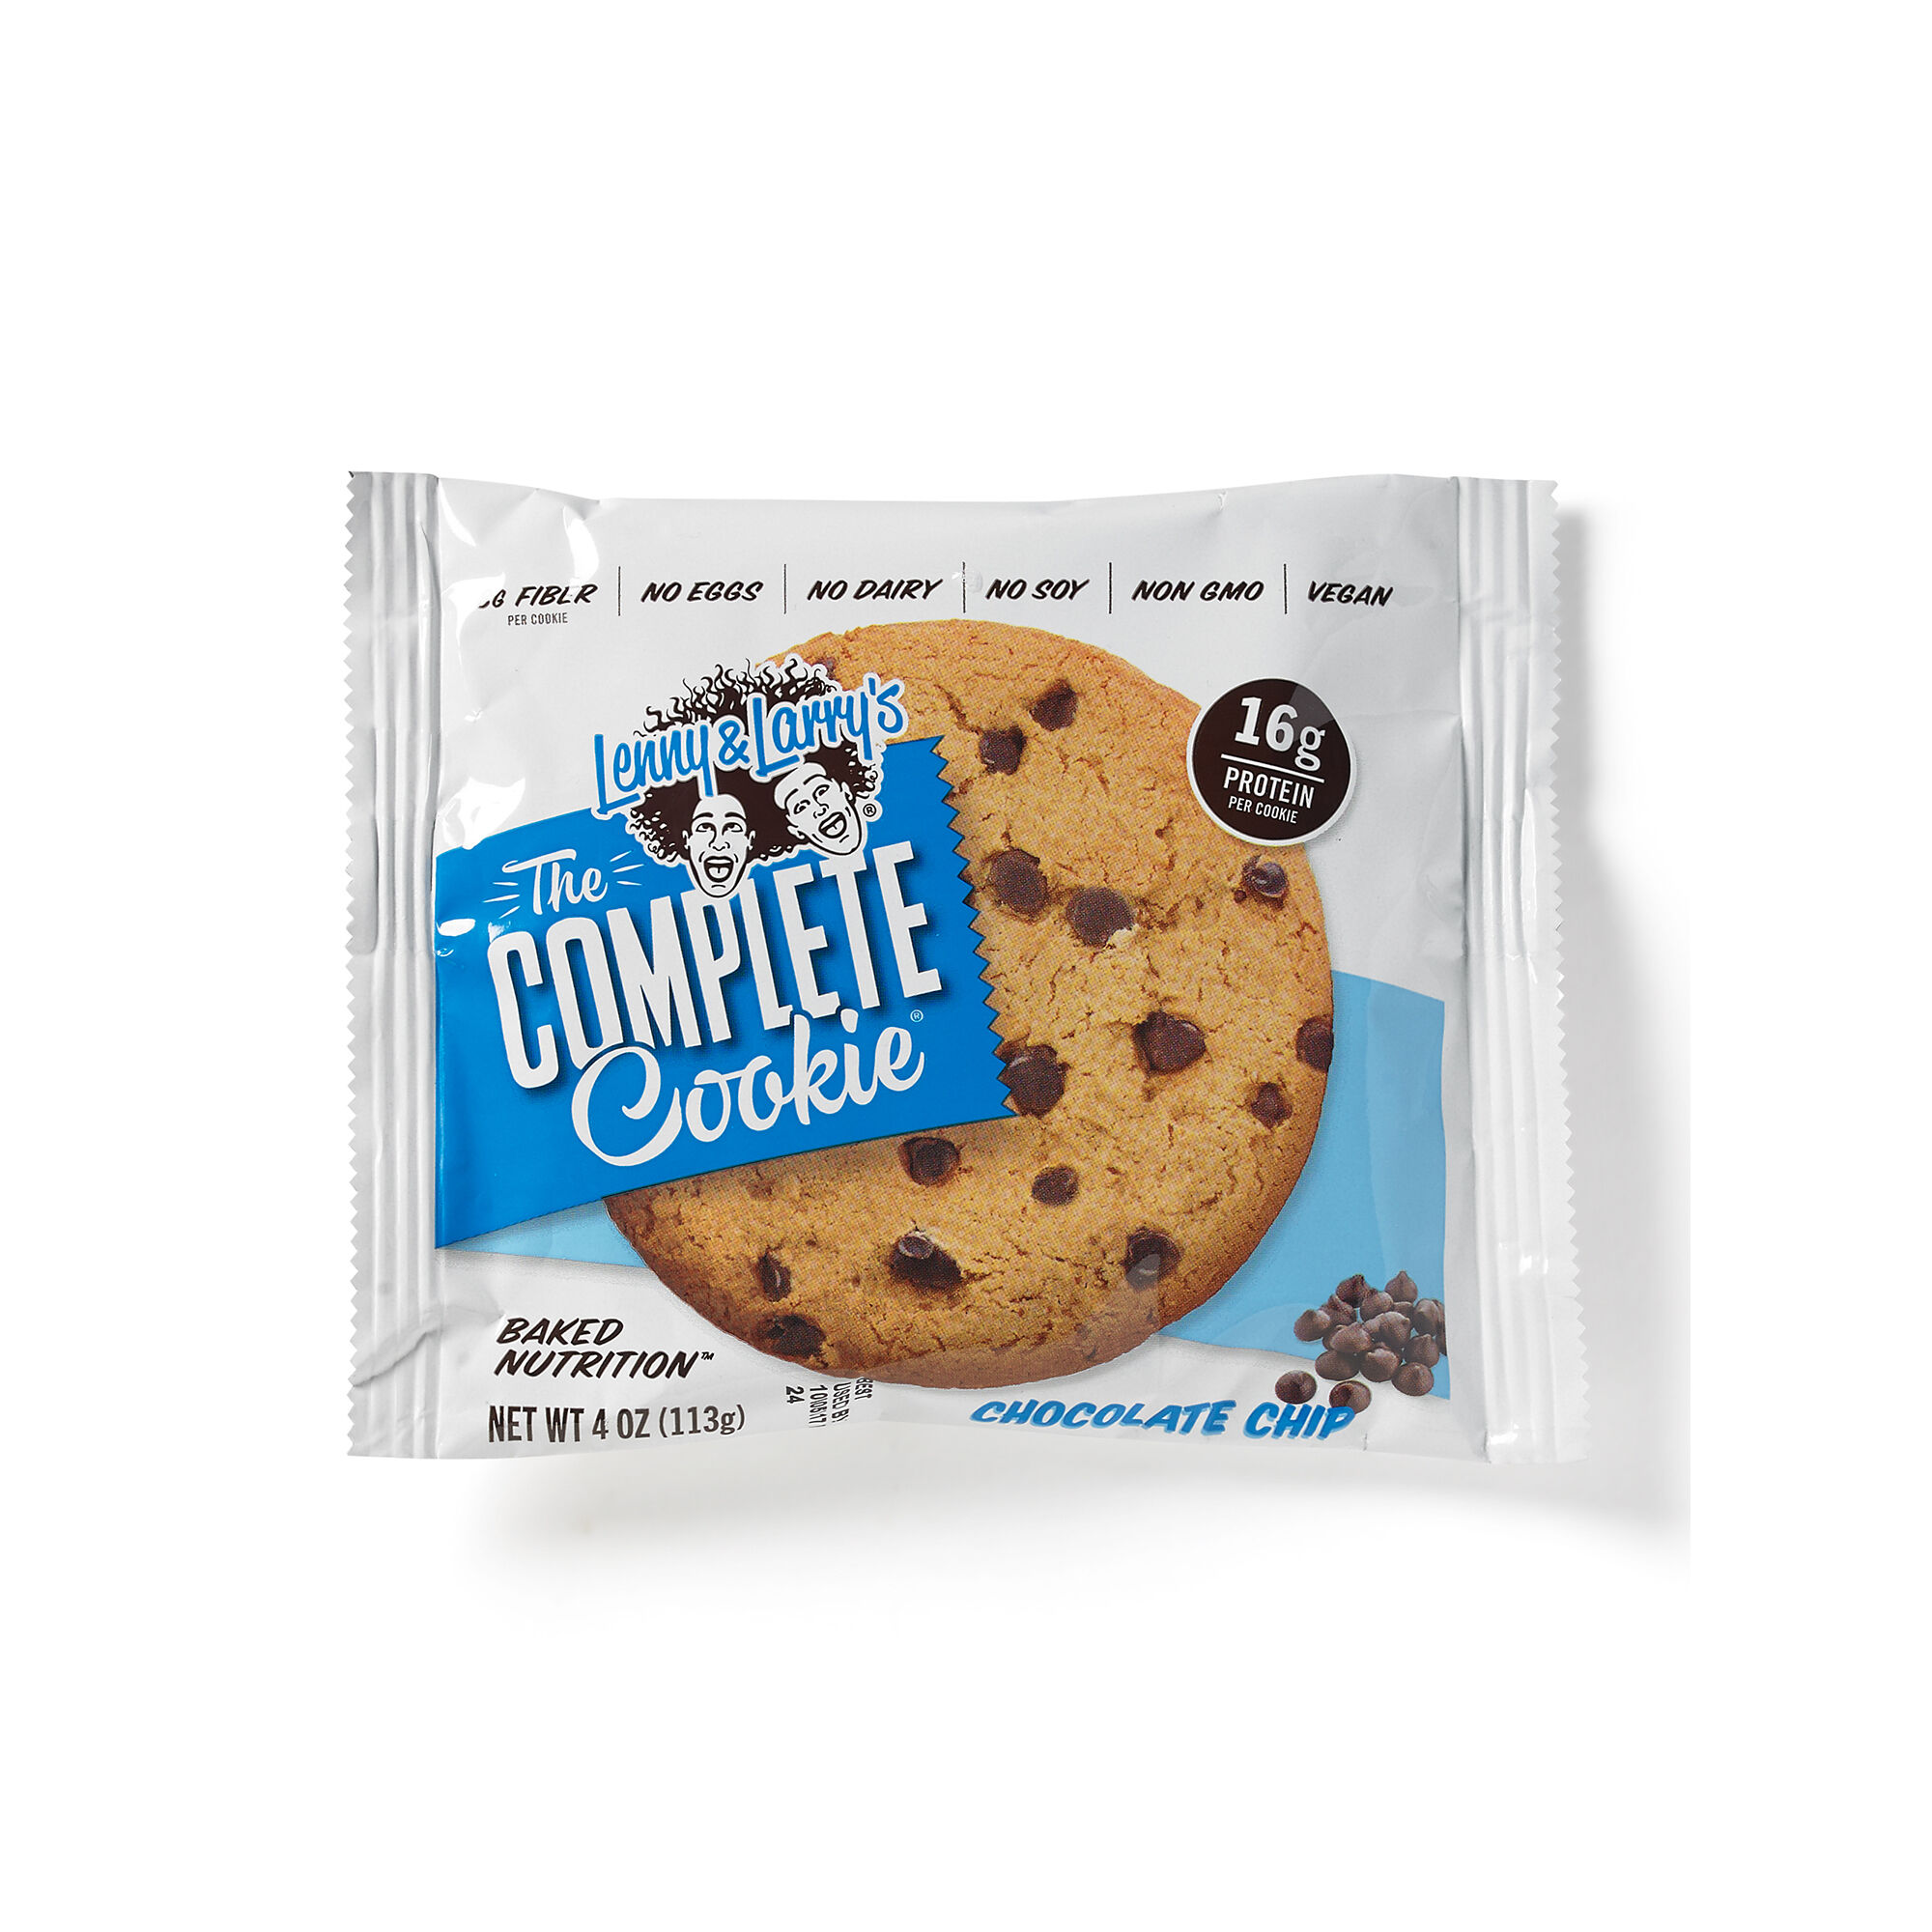 The Complete Cookie - Chocolate Chip - 1 Cookie - Lenny & Larry's - Meal Replacement Bars